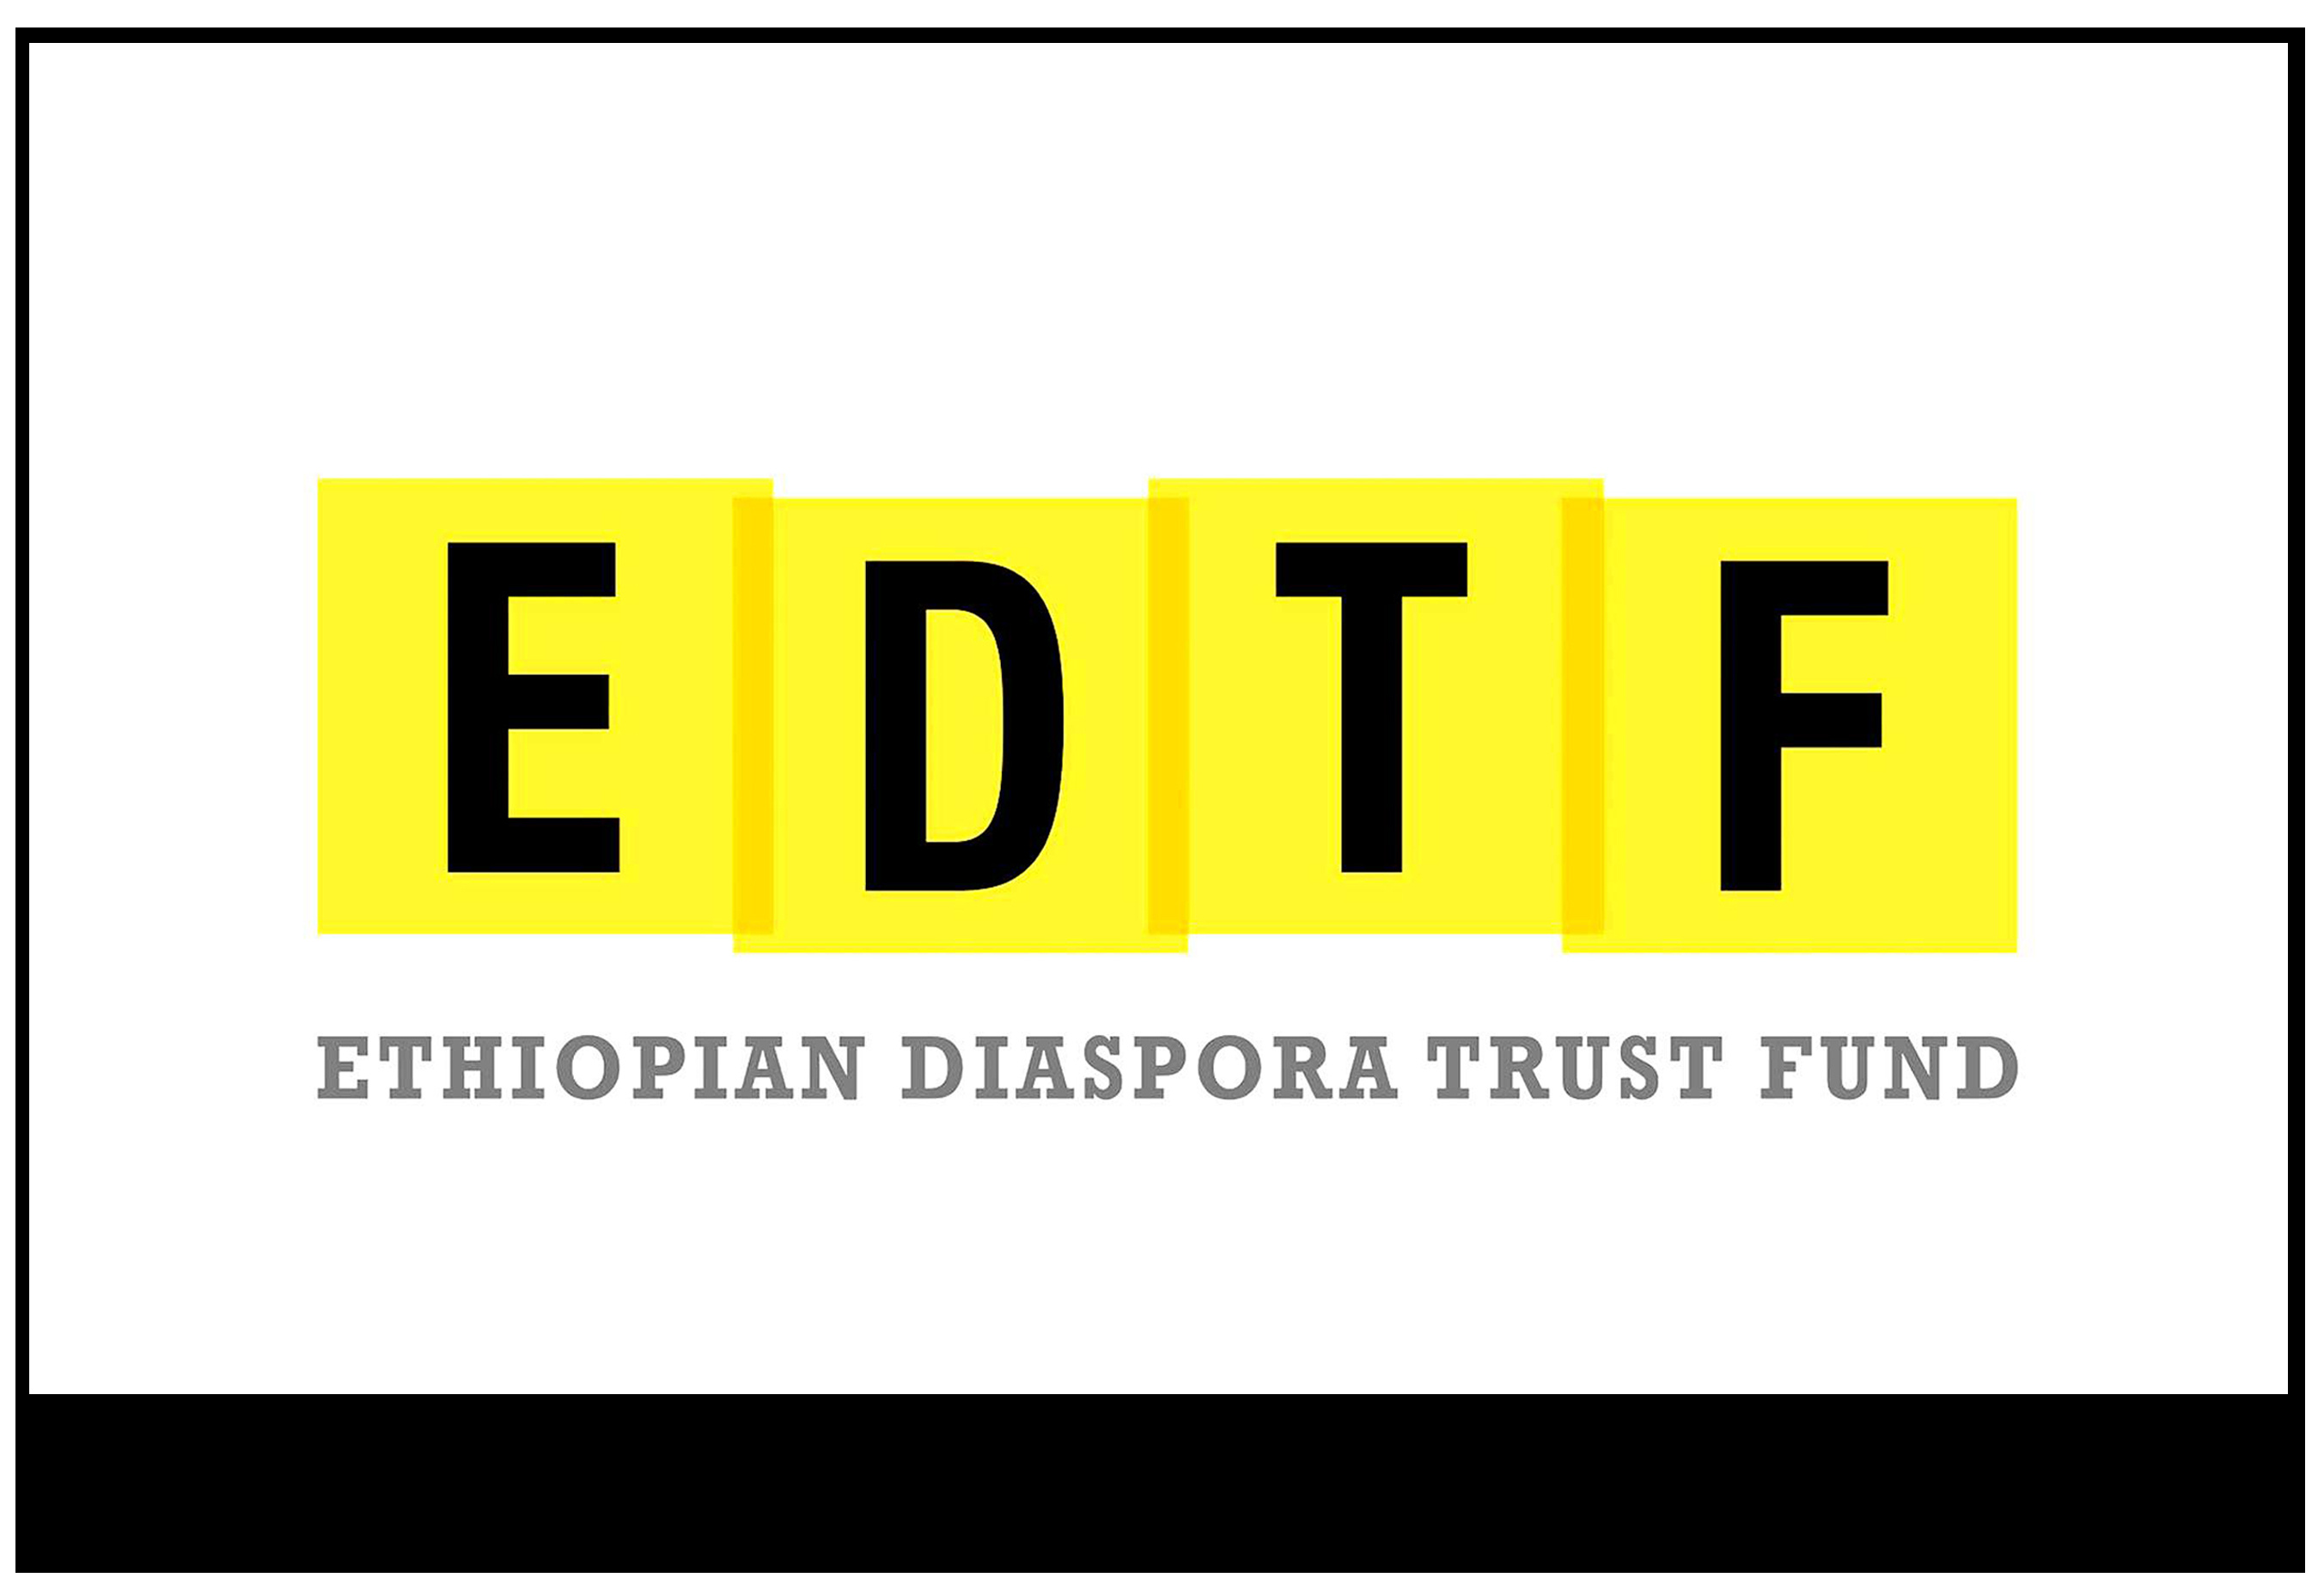 The Ethiopian Diaspora Trust Fund (EDTF)